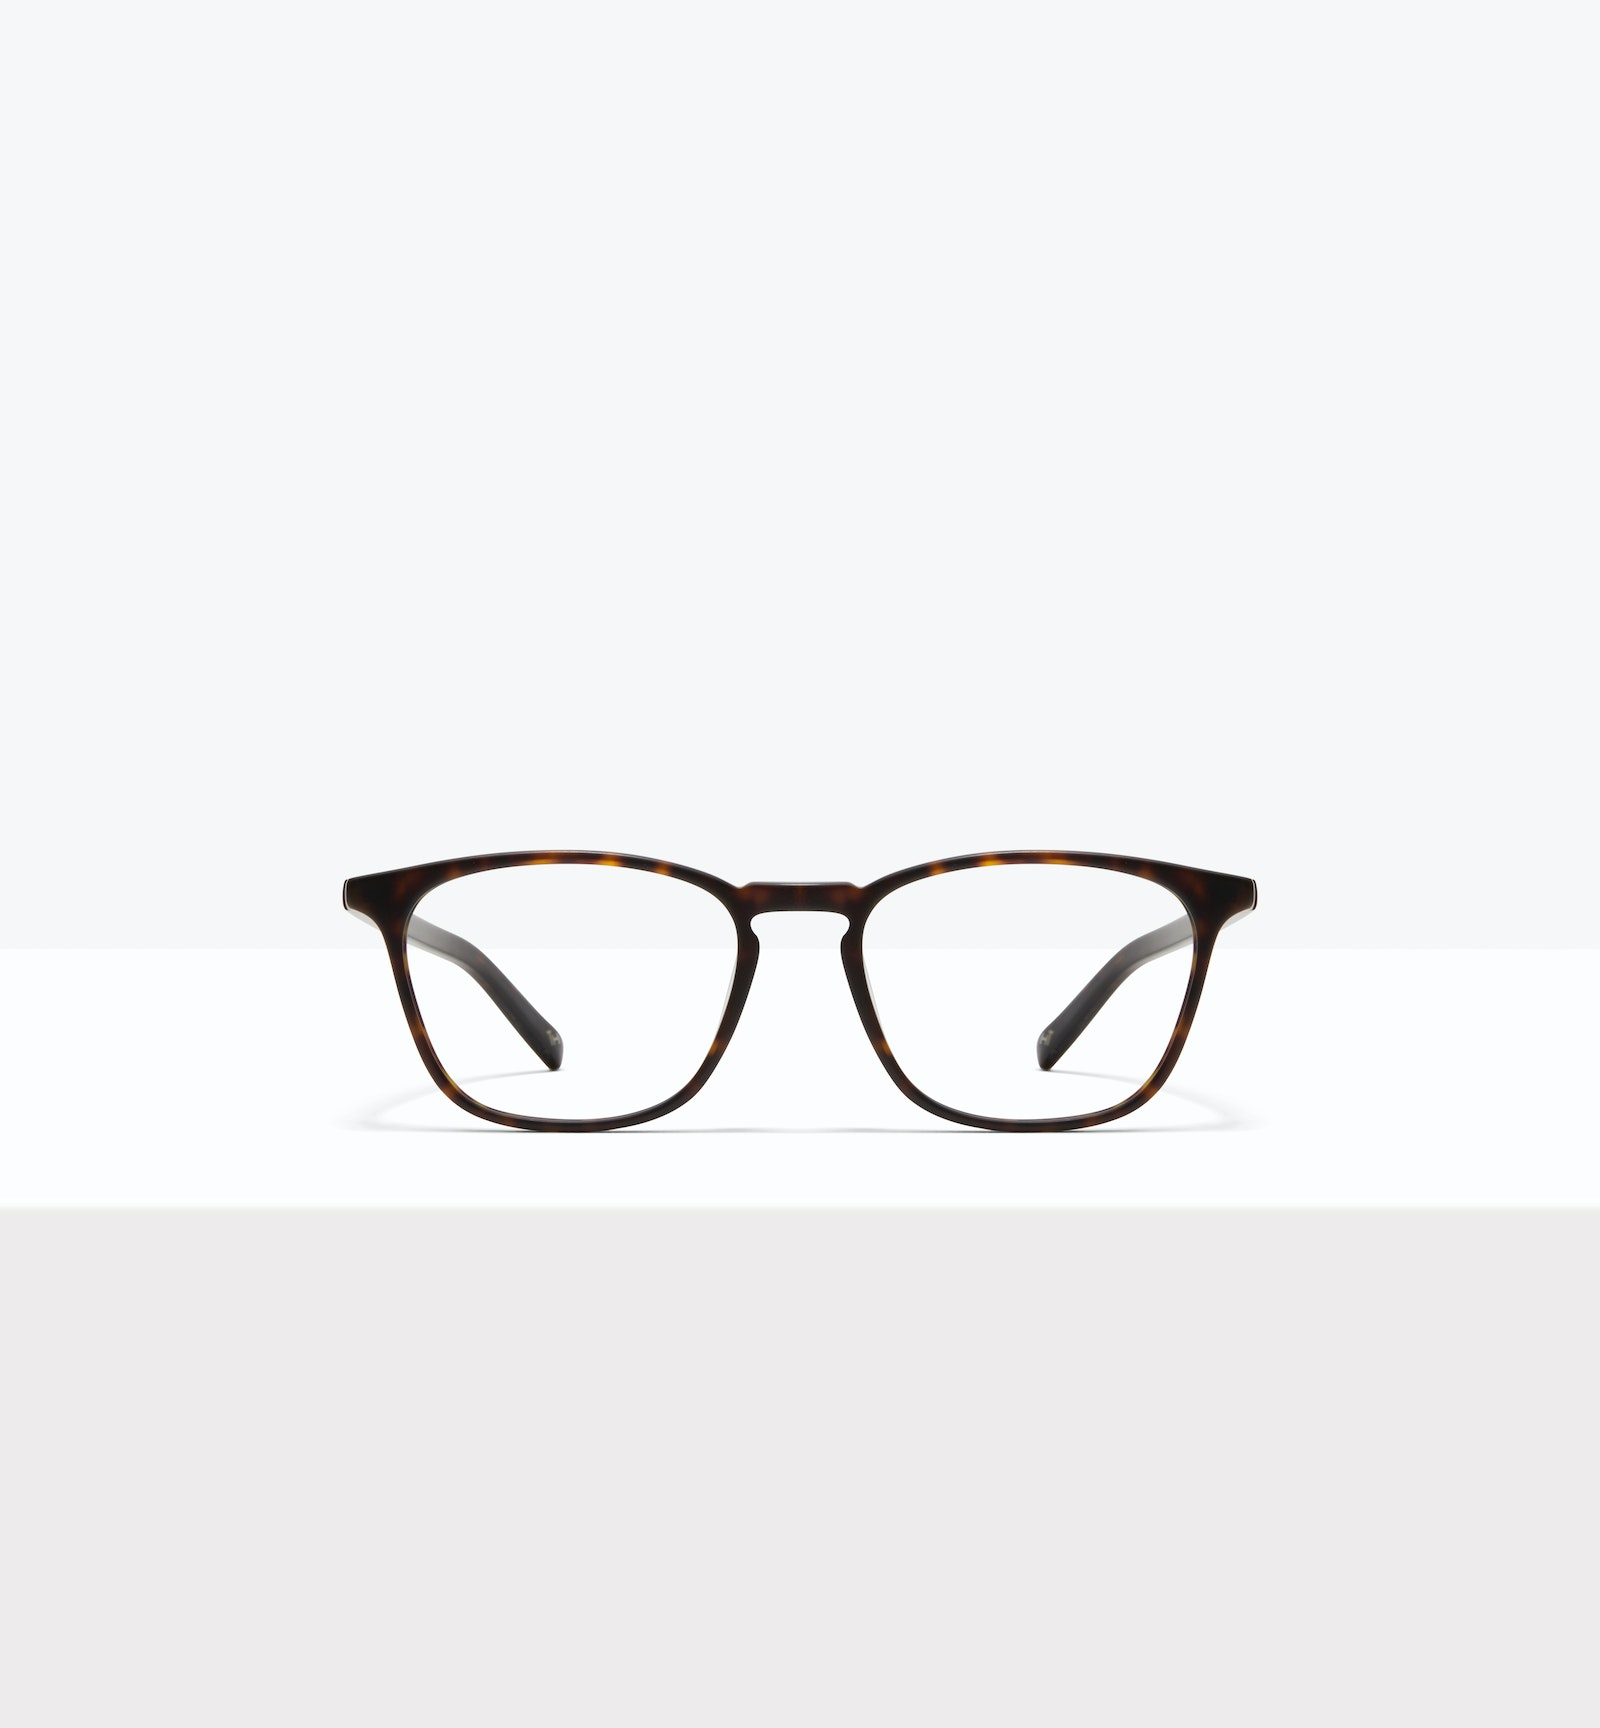 Affordable Fashion Glasses Square Eyeglasses Men Louise XL Matte Tortoise